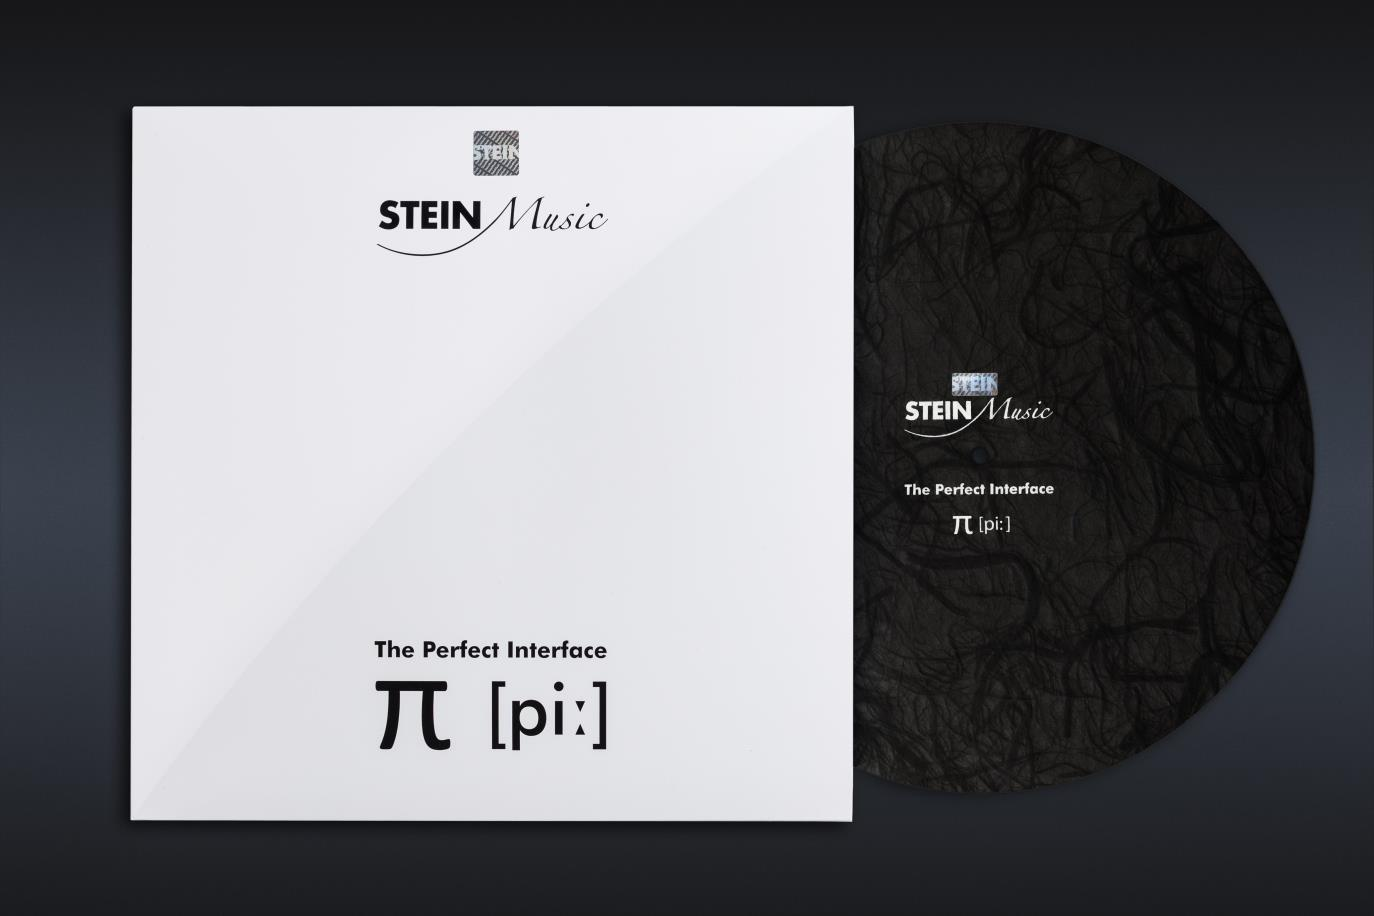 Stein Music The Perfect Interface π [piː] Signature Turntable Mat (Black Edition)